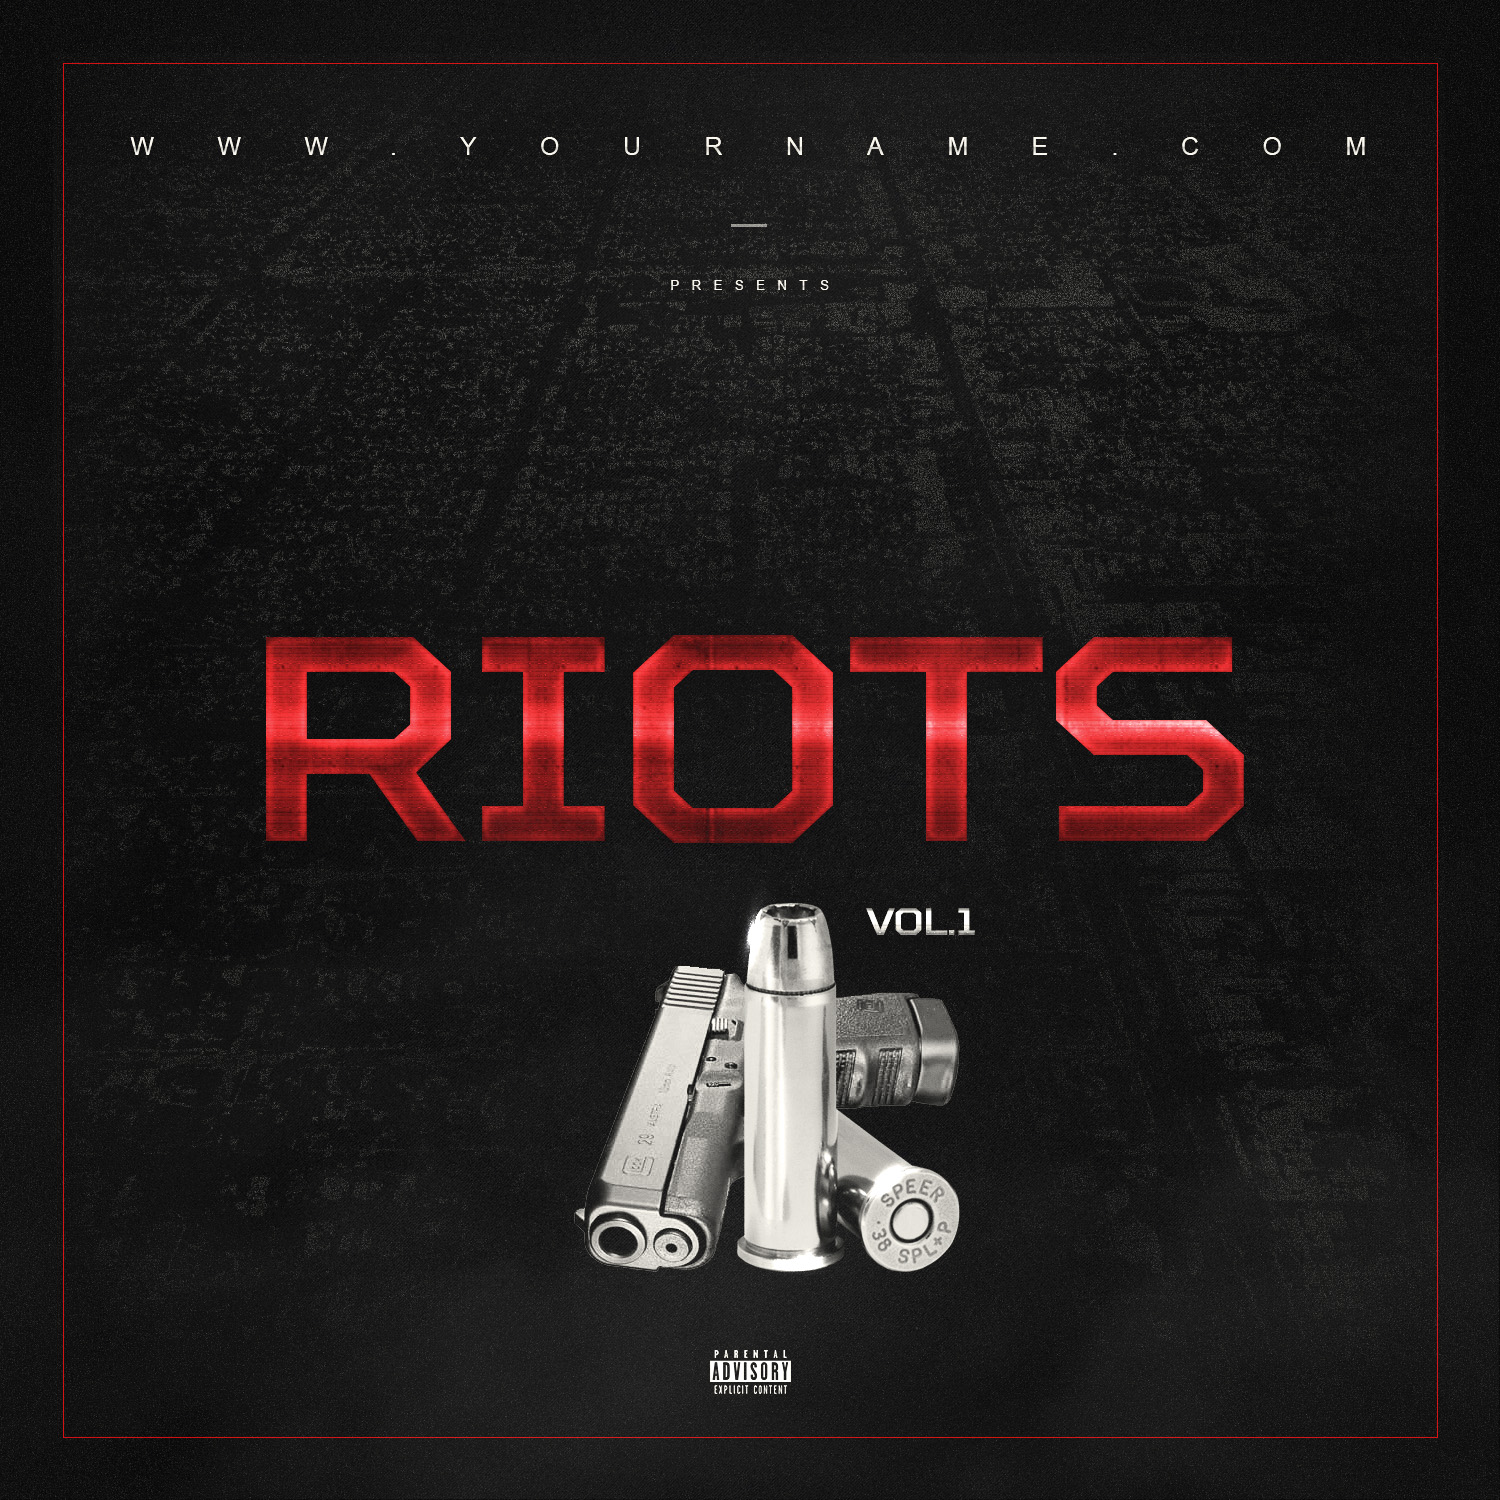 Riots Mixtape Cover Template Vms